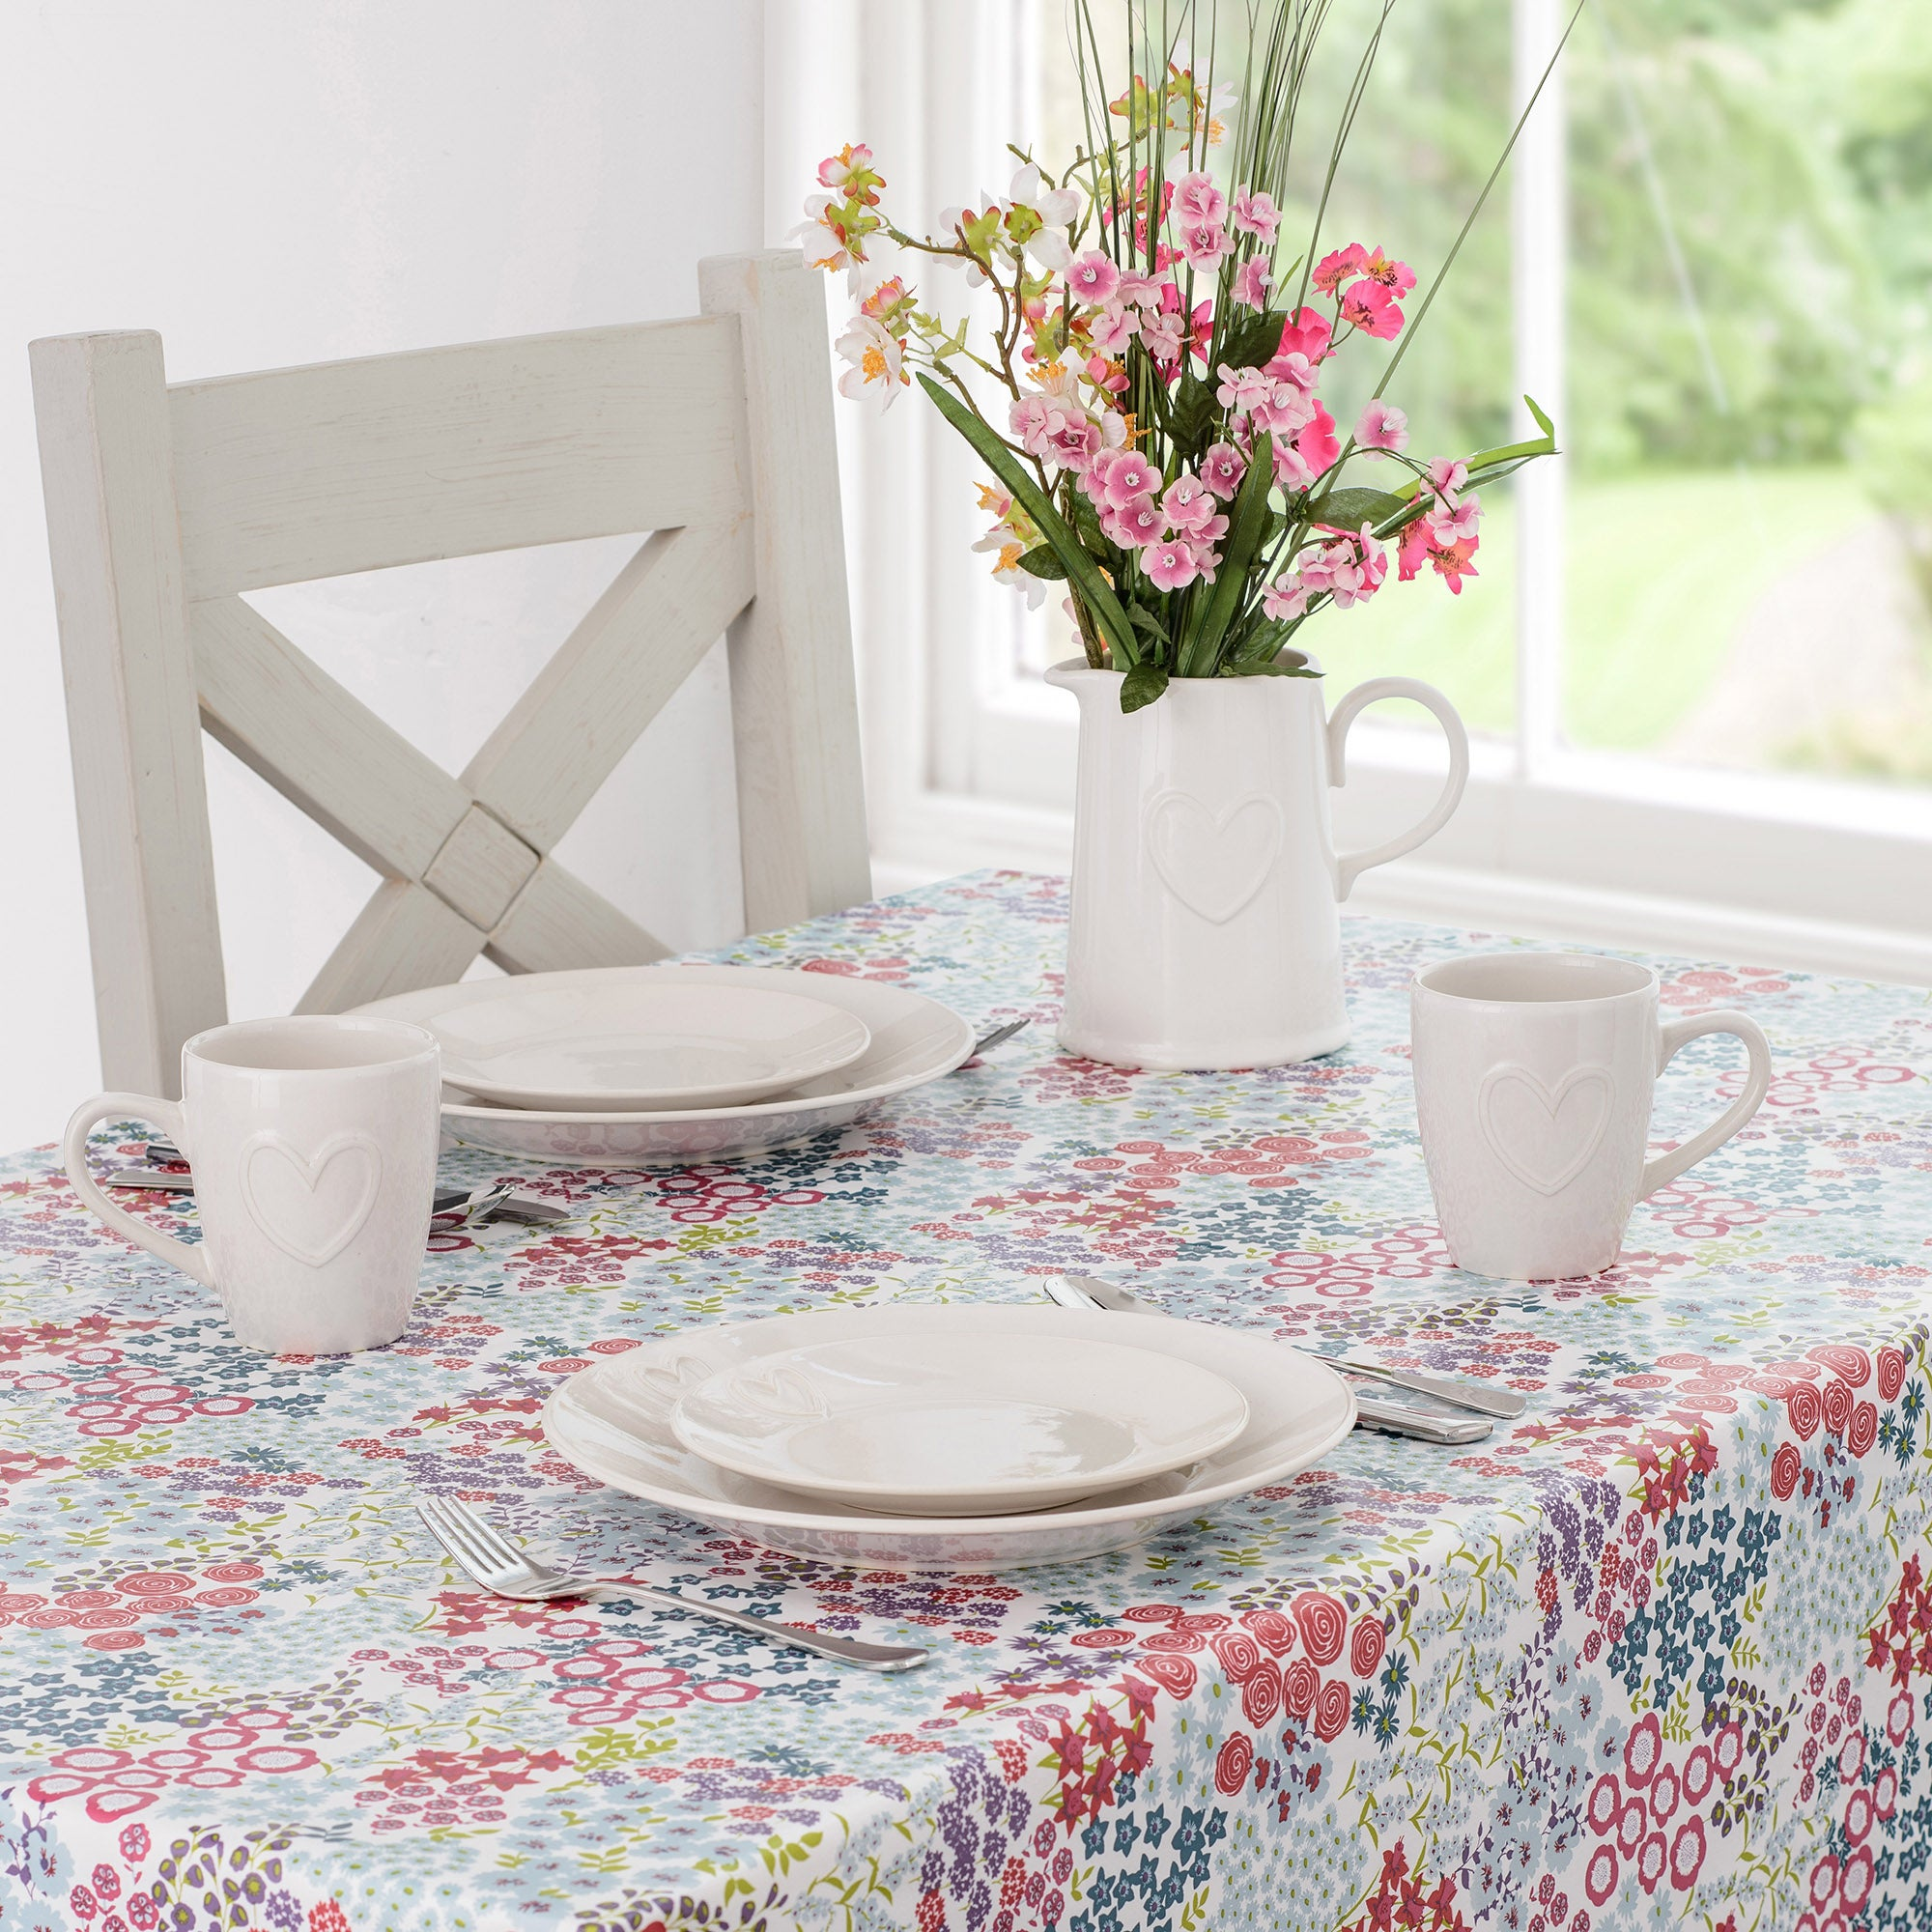 Image of Flower Show PVC Tablecloth White / Red / Blue